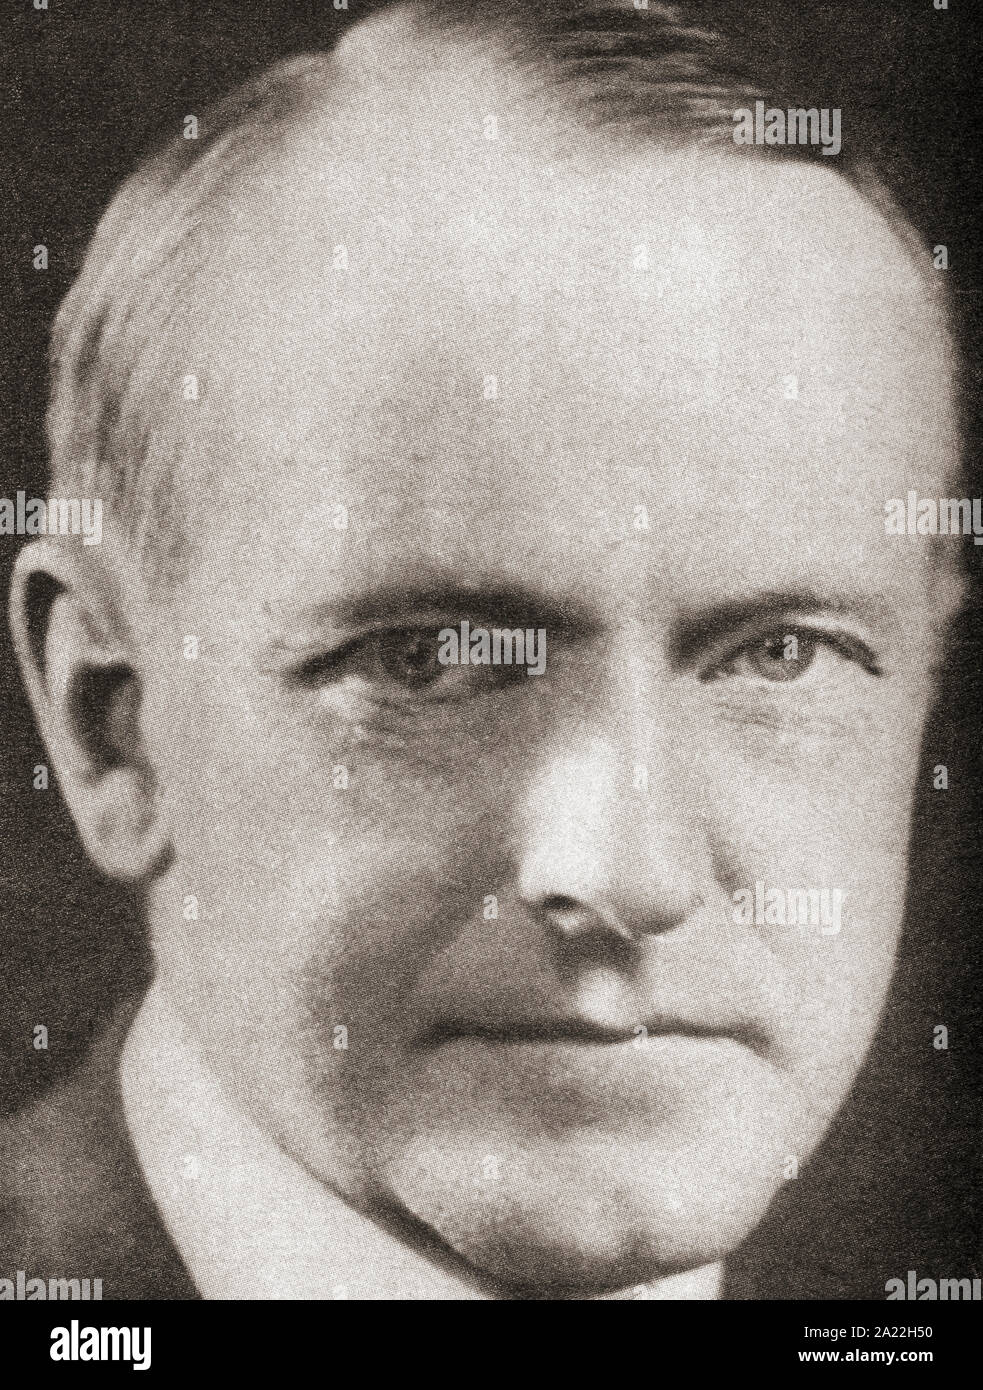 Calvin Coolidge, 1872 – 1933.  American politician, lawyer and 30th president of the United States of America.  From The Pageant of the Century, published 1934. Stock Photo